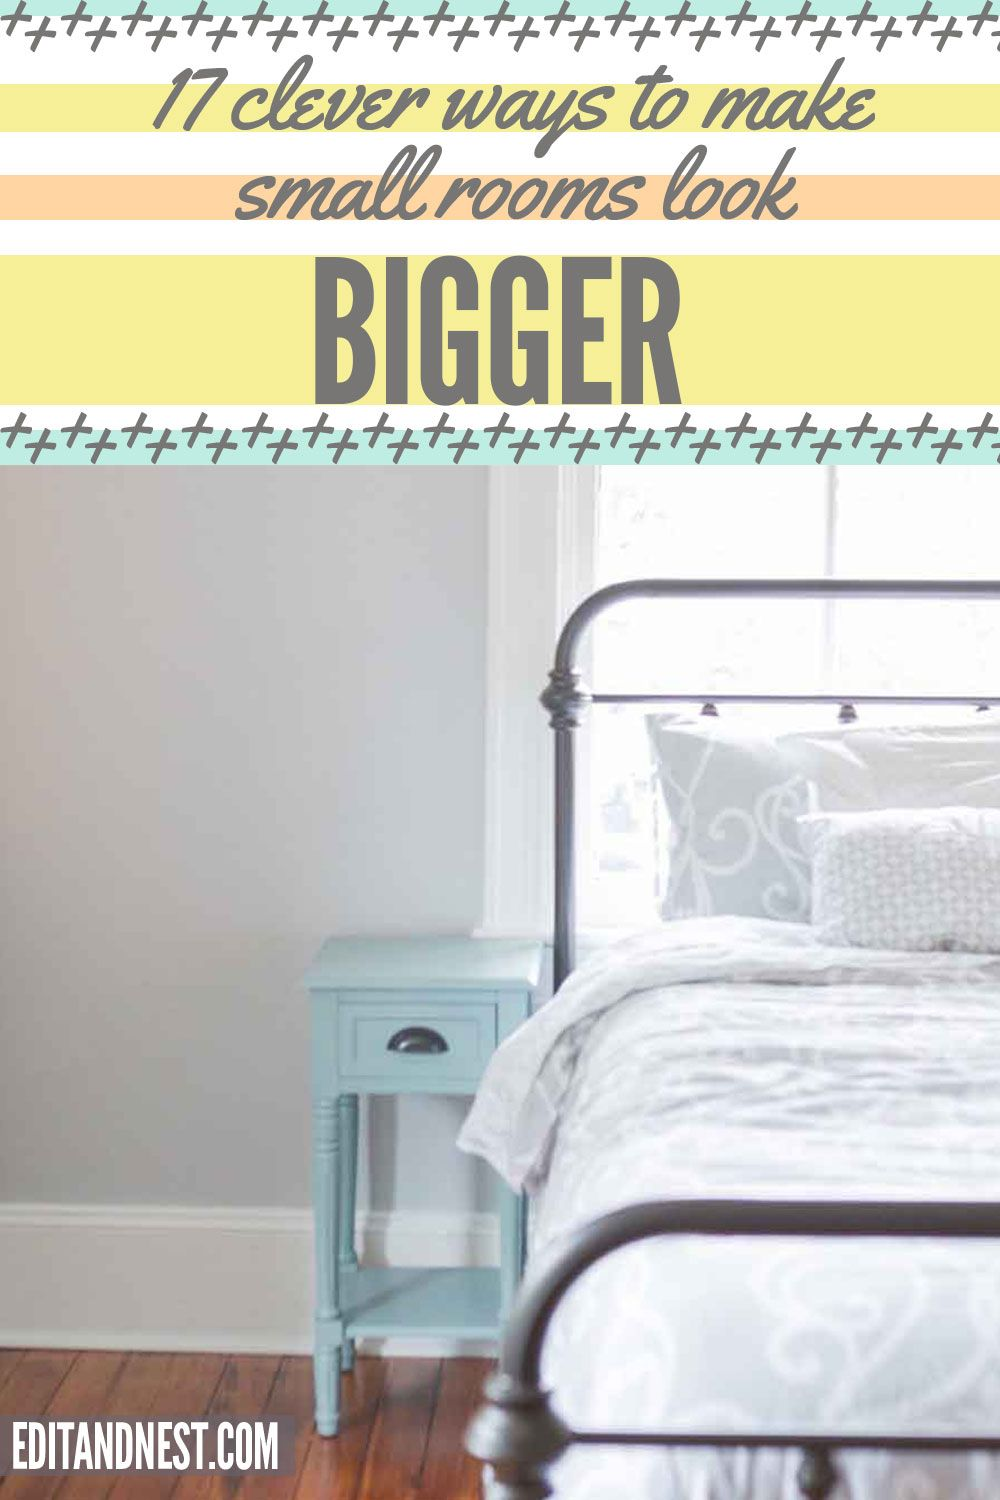 Knowing the secrets of how to make a small space look